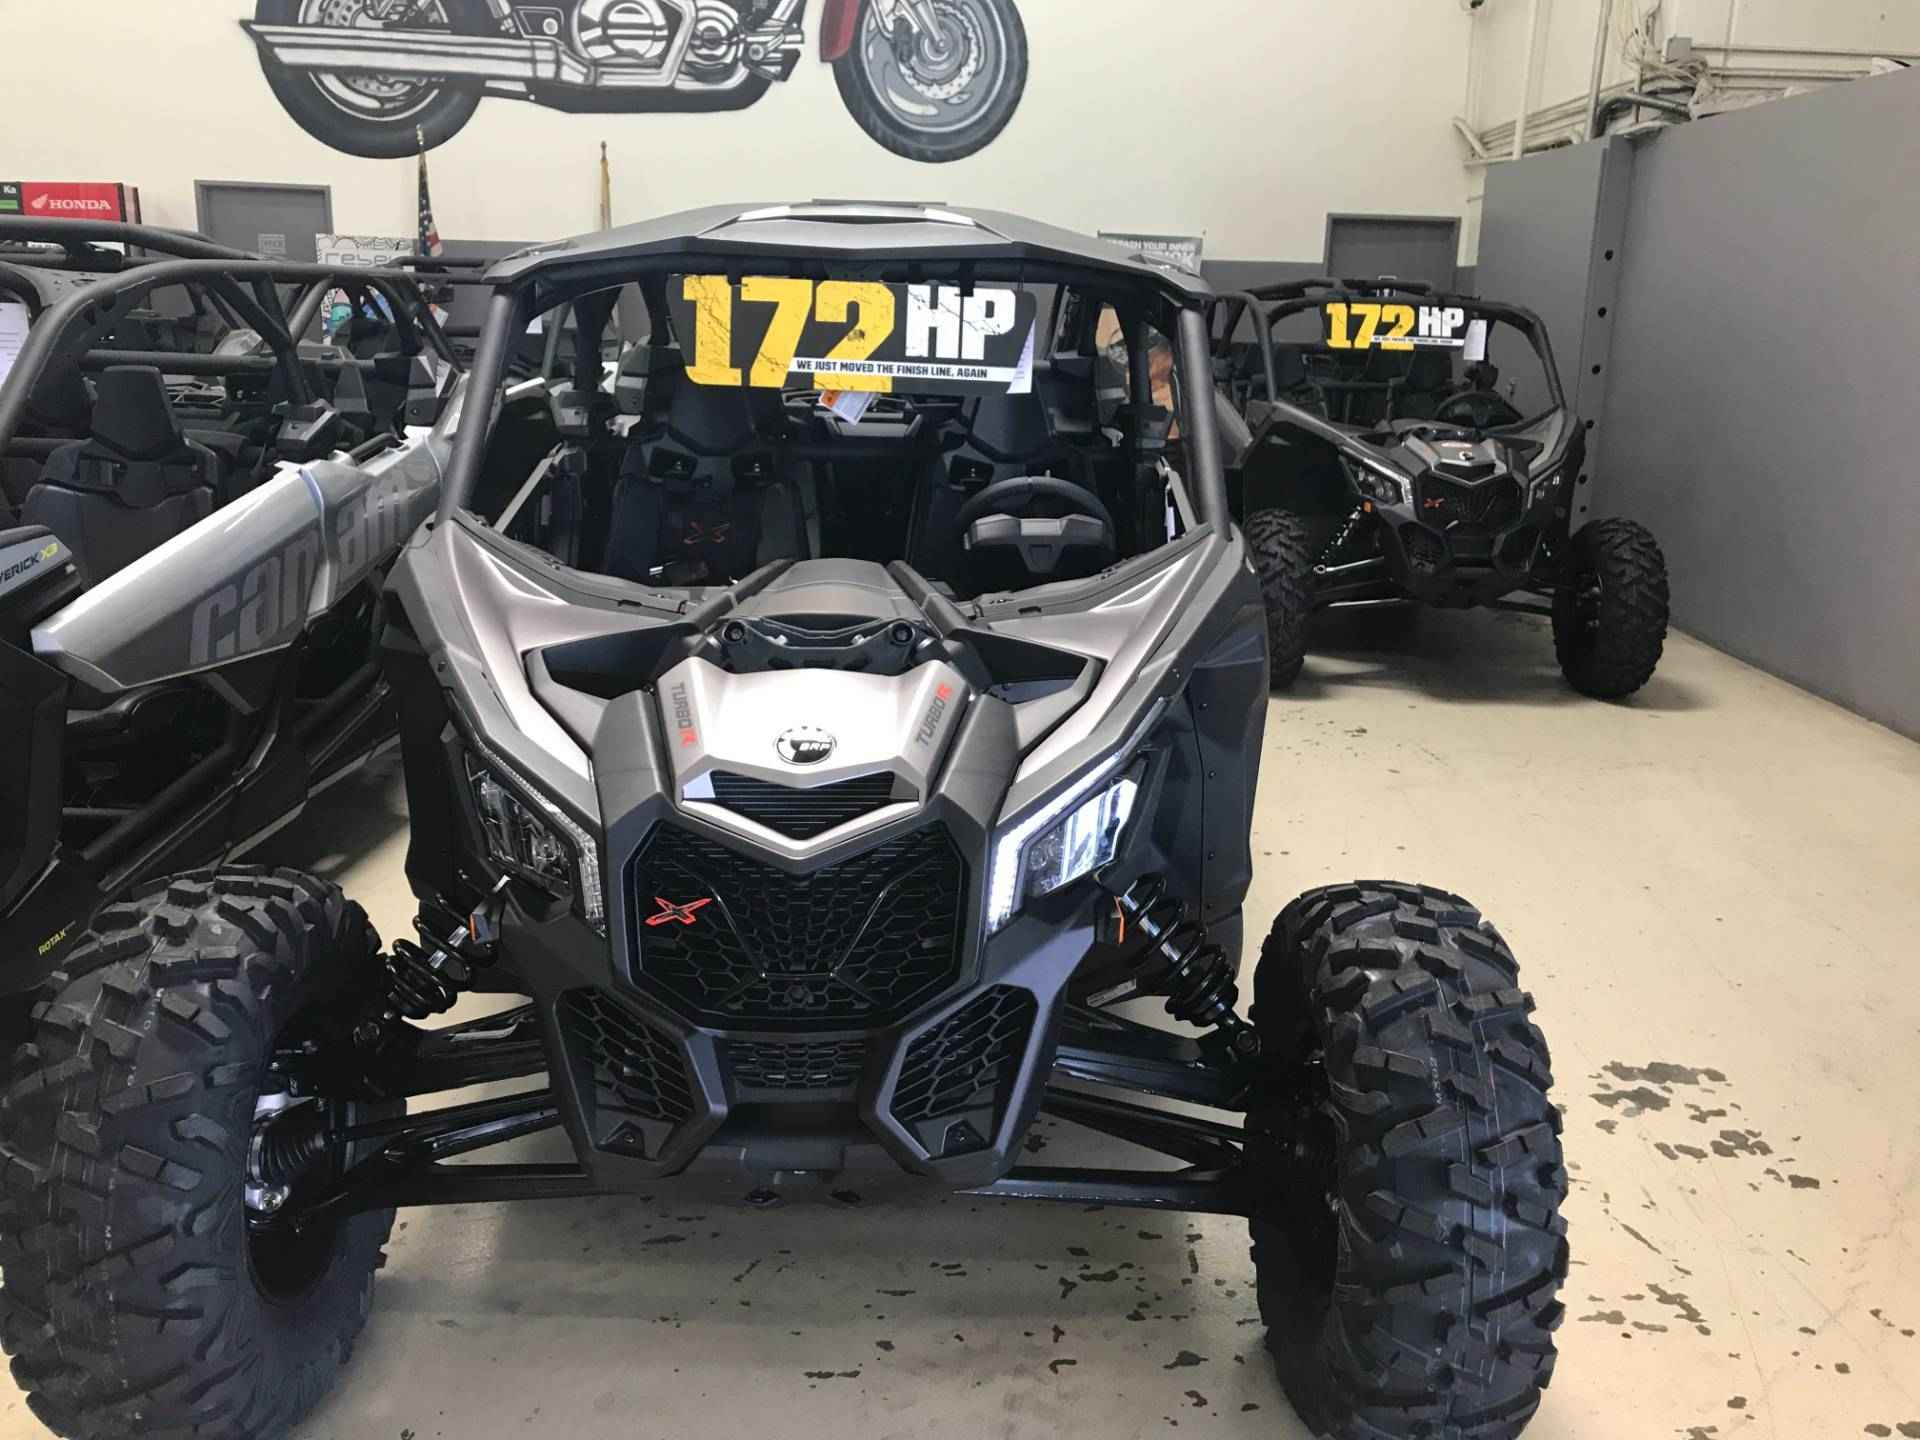 new 2018 can am maverick x3 max x rs turbo r atvs for sale in california on atv trades. Black Bedroom Furniture Sets. Home Design Ideas